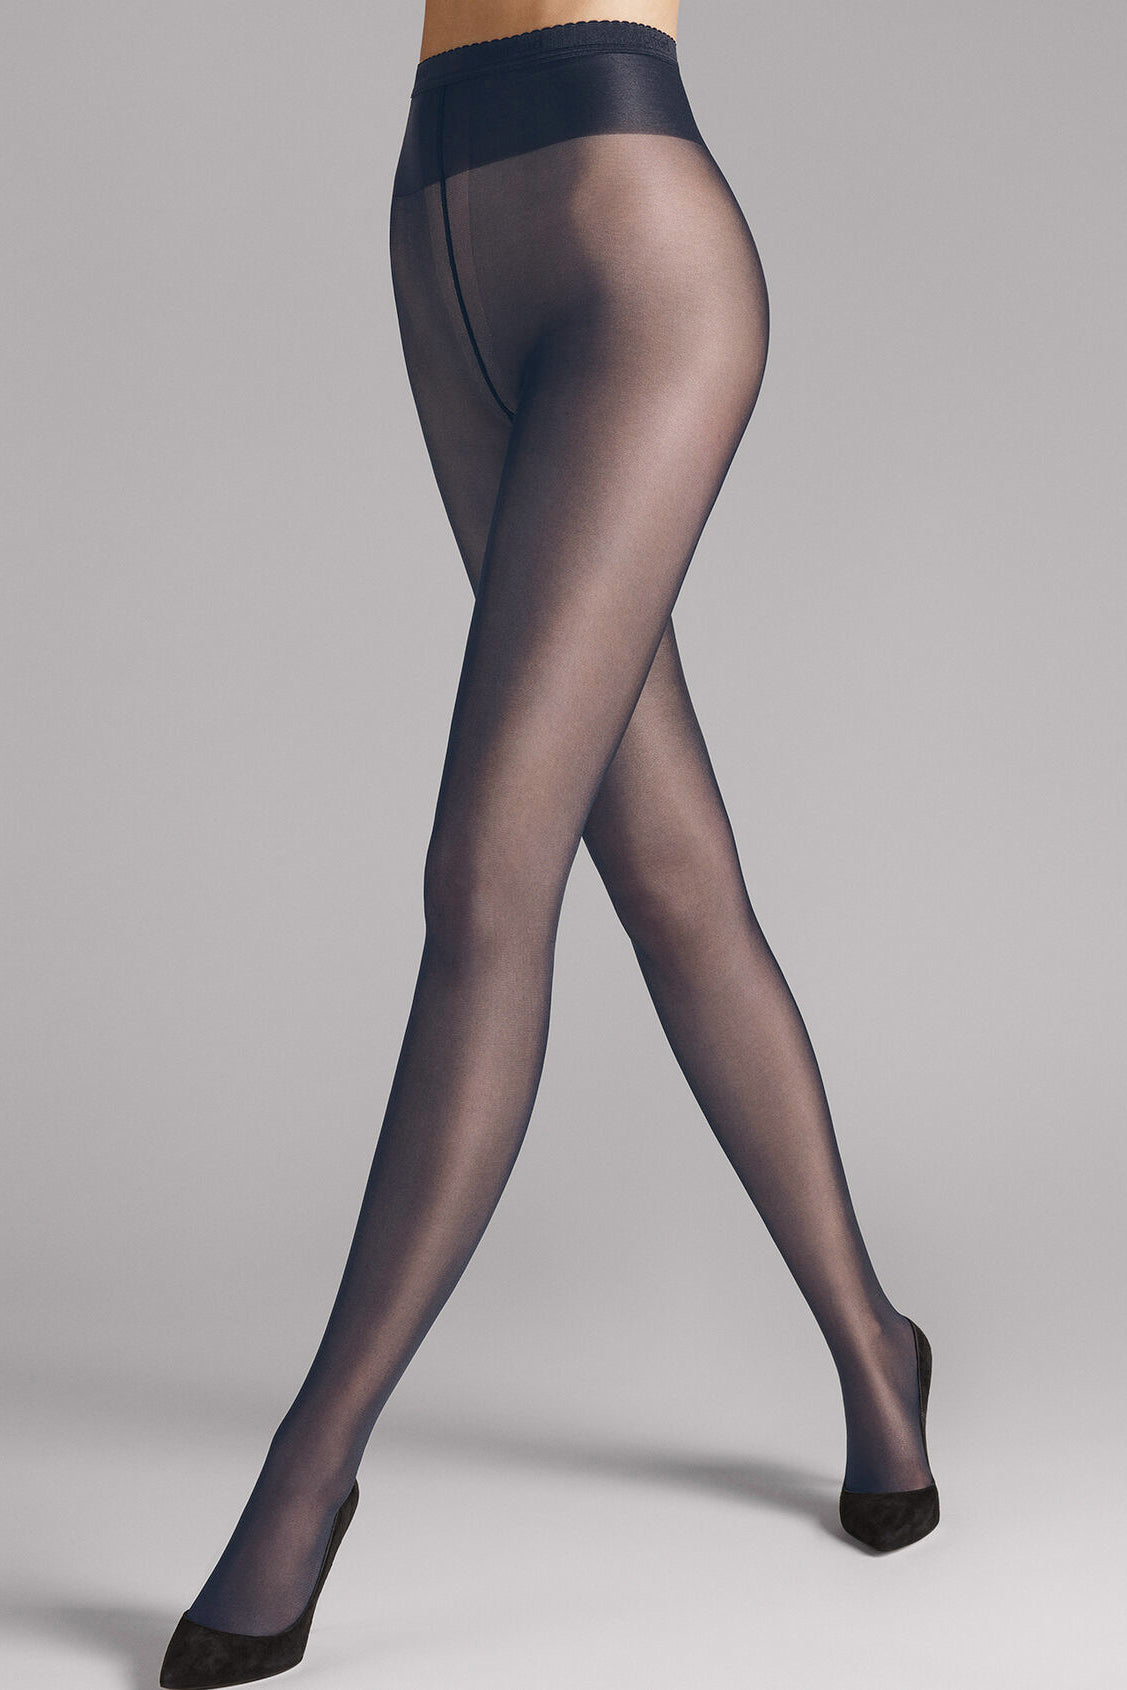 Wolford Neon 40 Tights in Caviar - Vert & Vogue